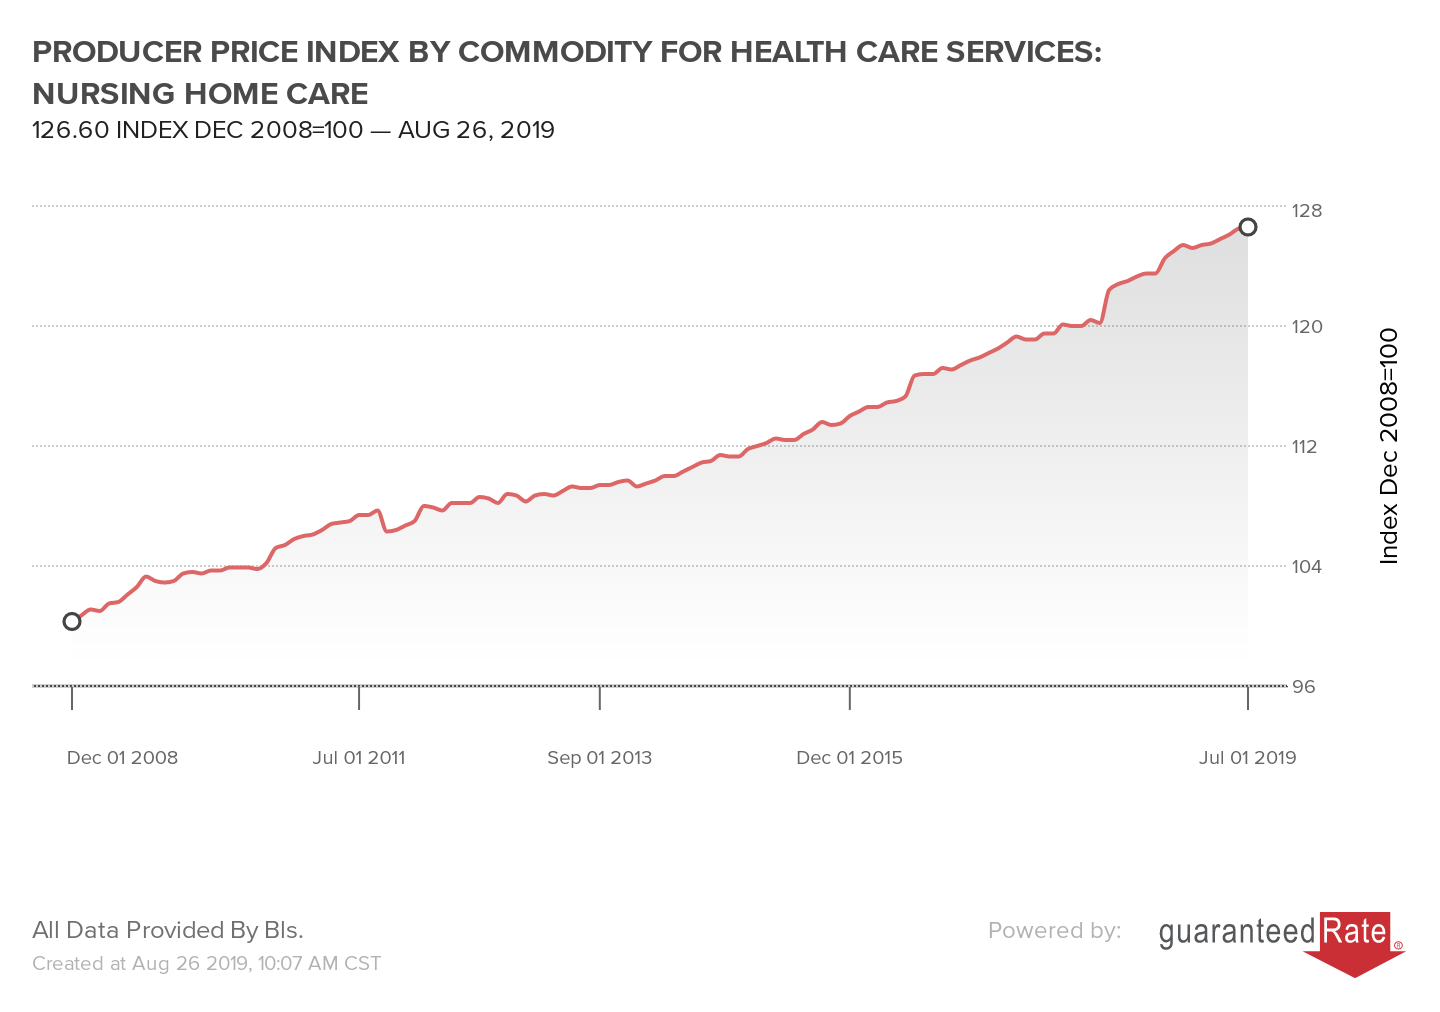 PRODUCER PRICE INDEX BY COMMODITY FOR HEALTH CARE SERVICES: NURSING HOME CARE